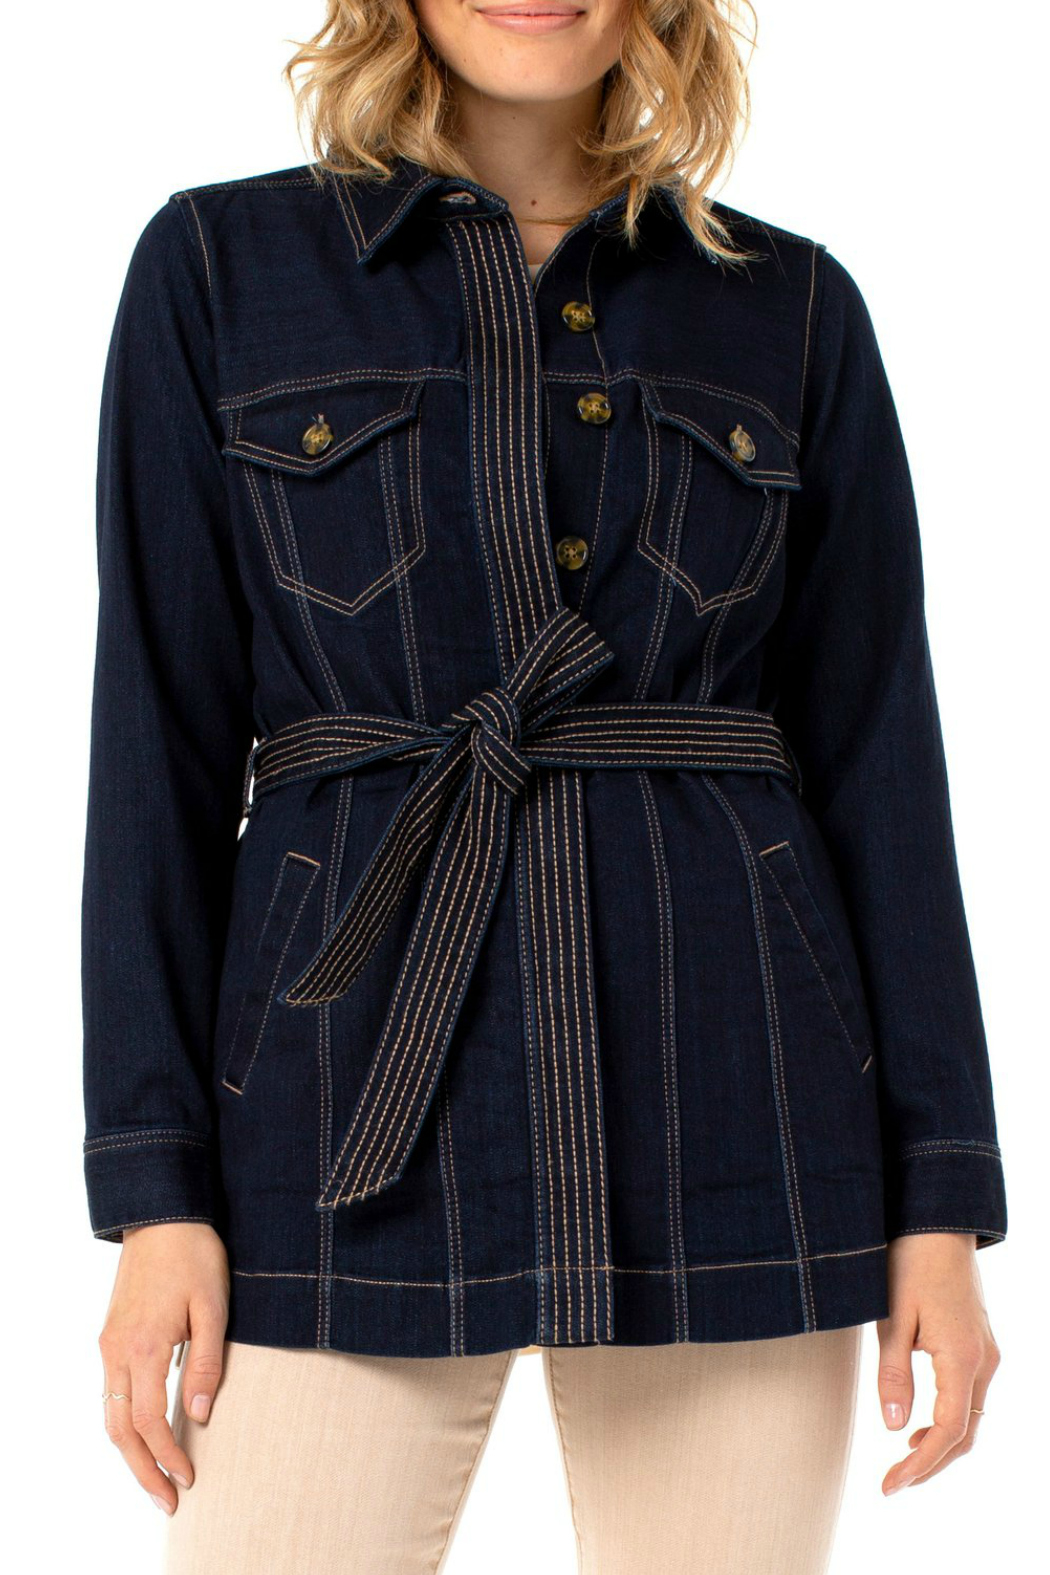 Liverpool  BELTED LONG JACKET SILKY SOFT - Main Image